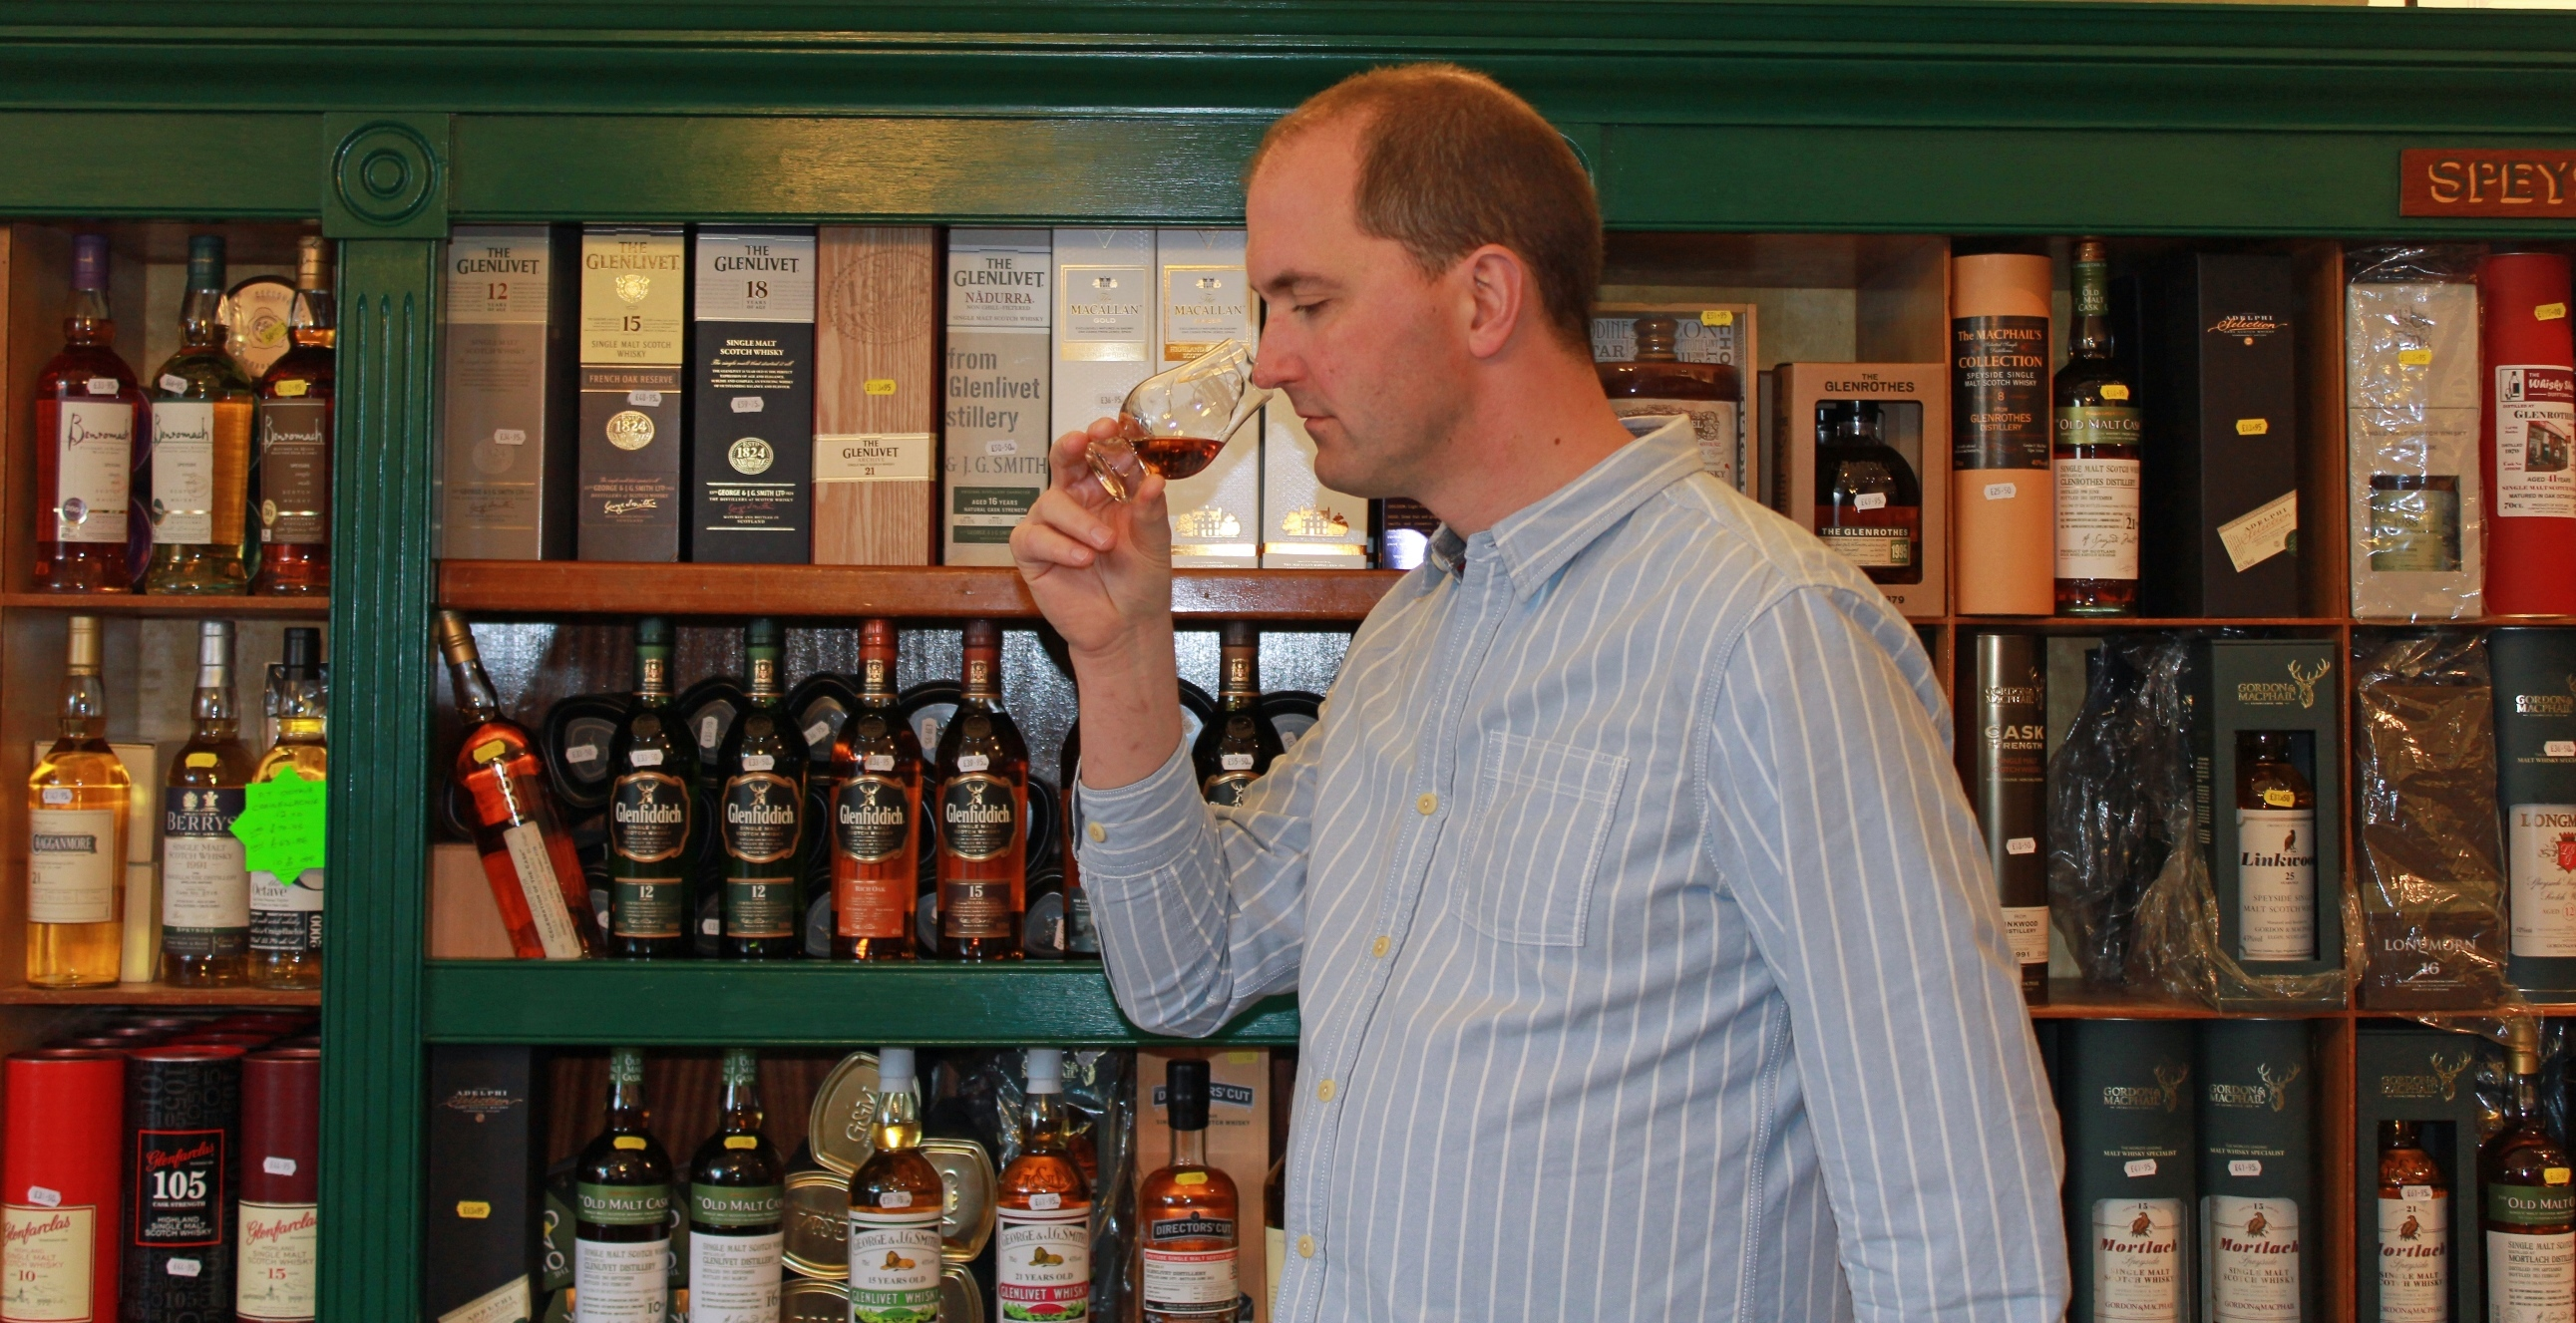 Mike Lord, owner of The Whisky Shop in Dufftown, is hosting events for the Spirit of Speyside Whisky Festival.